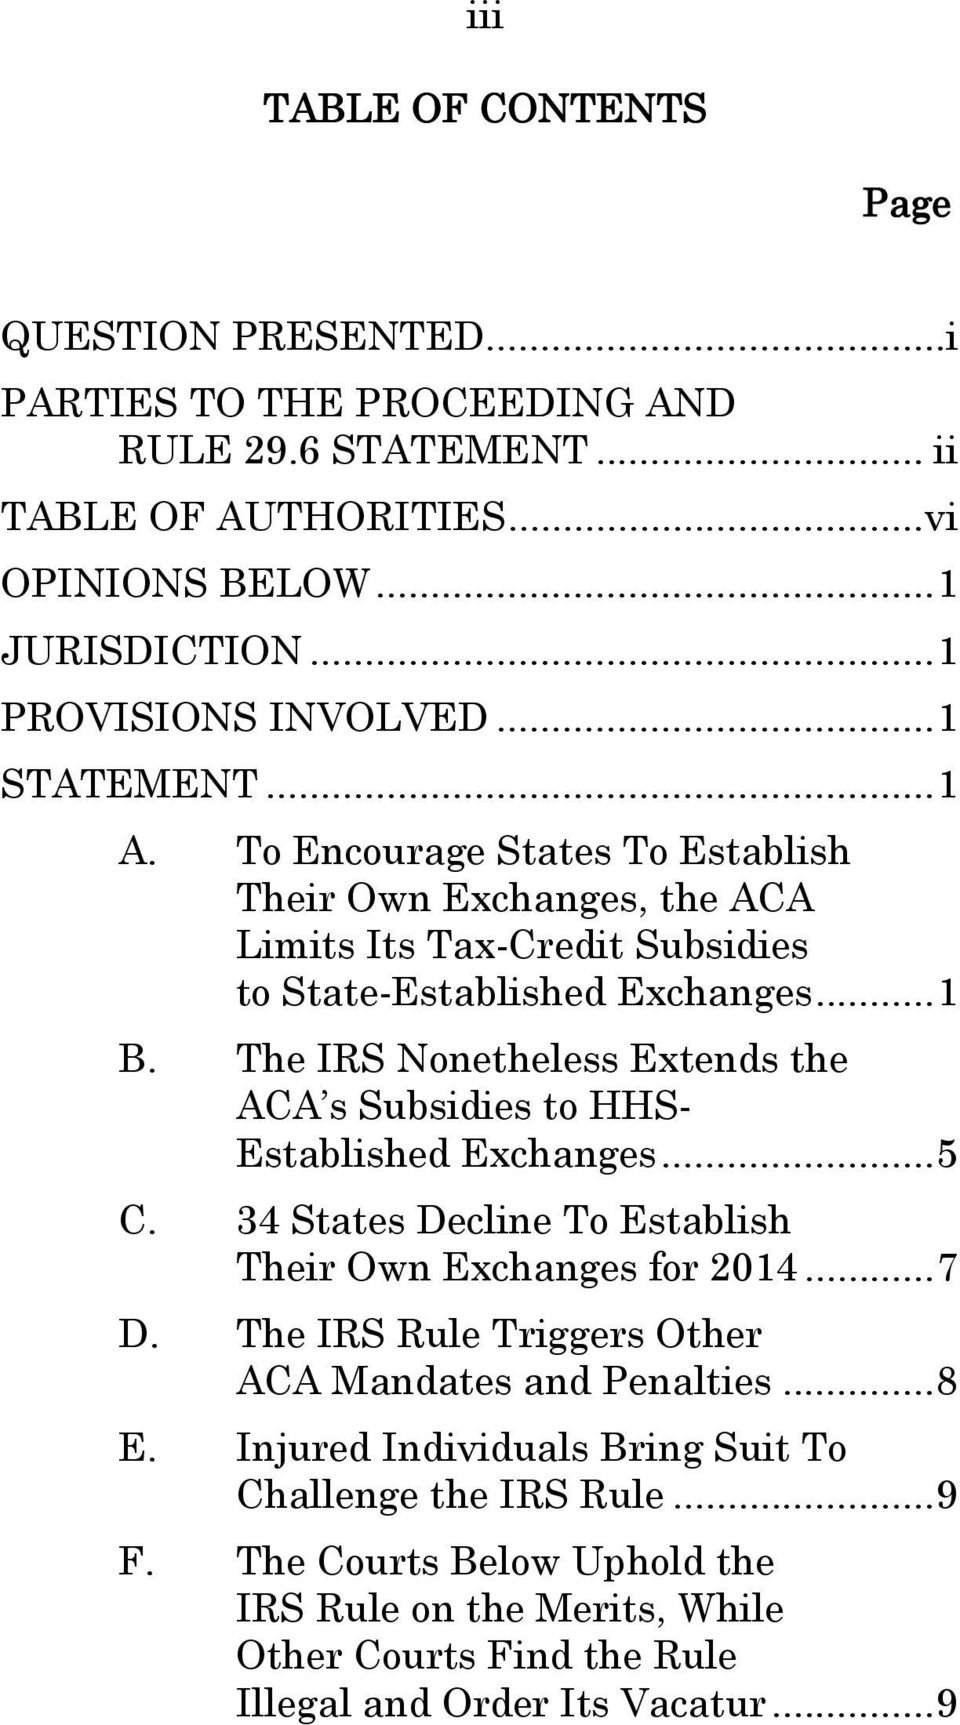 The IRS Nonetheless Extends the ACA s Subsidies to HHS- Established Exchanges... 5 C. 34 States Decline To Establish Their Own Exchanges for 2014... 7 D.